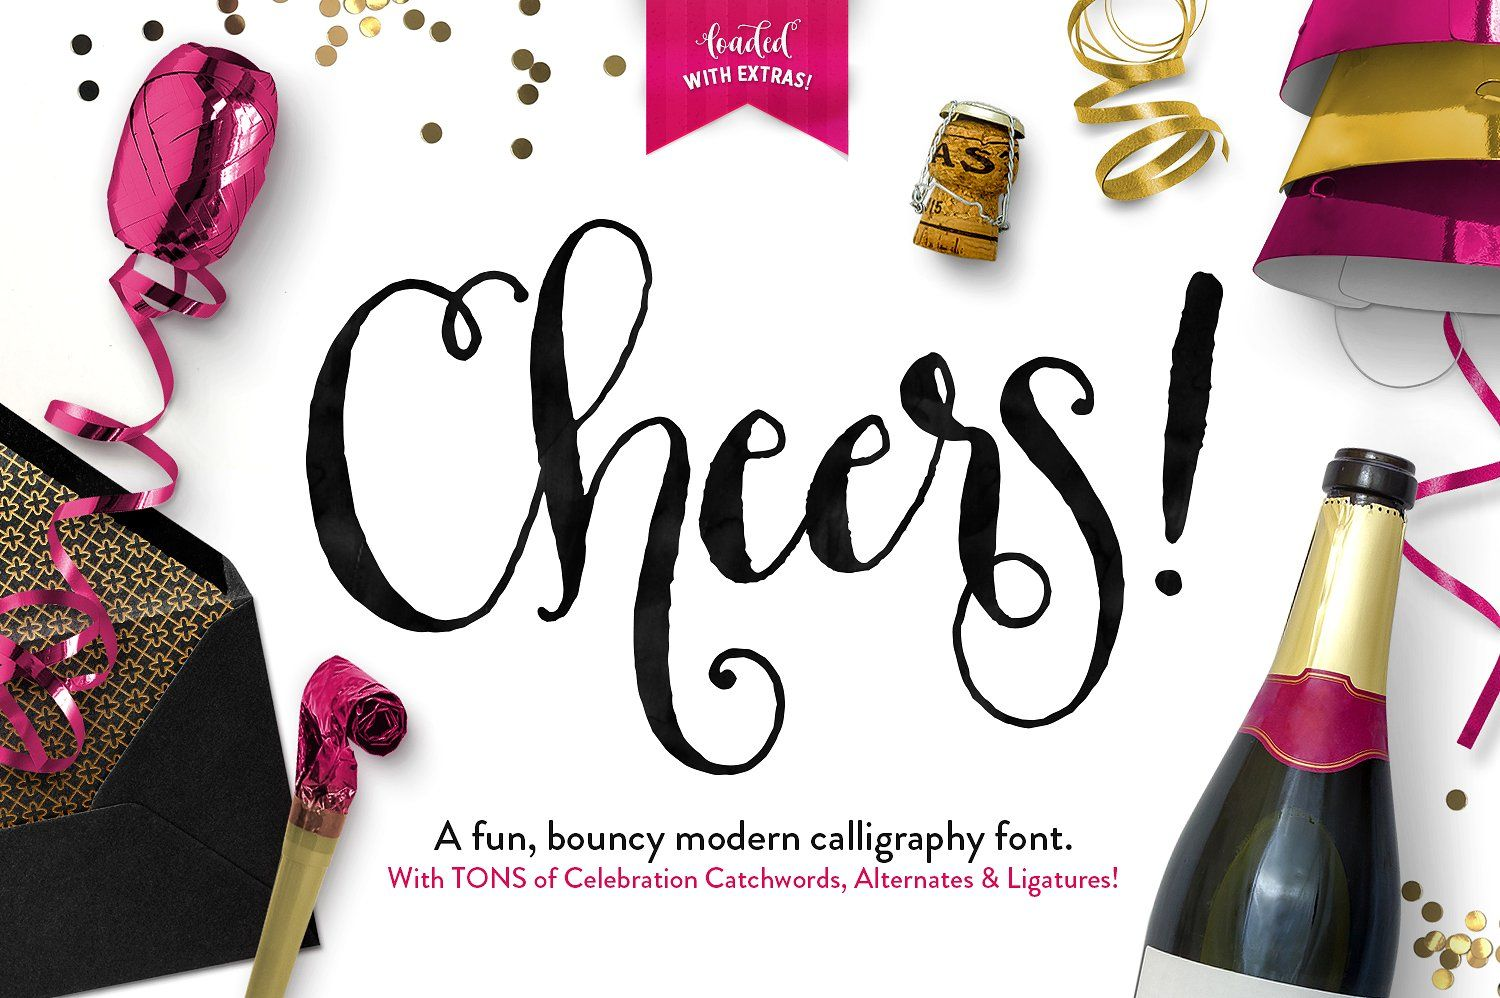 Download Cheers Font & Graphics Pack   Modern calligraphy fonts ...